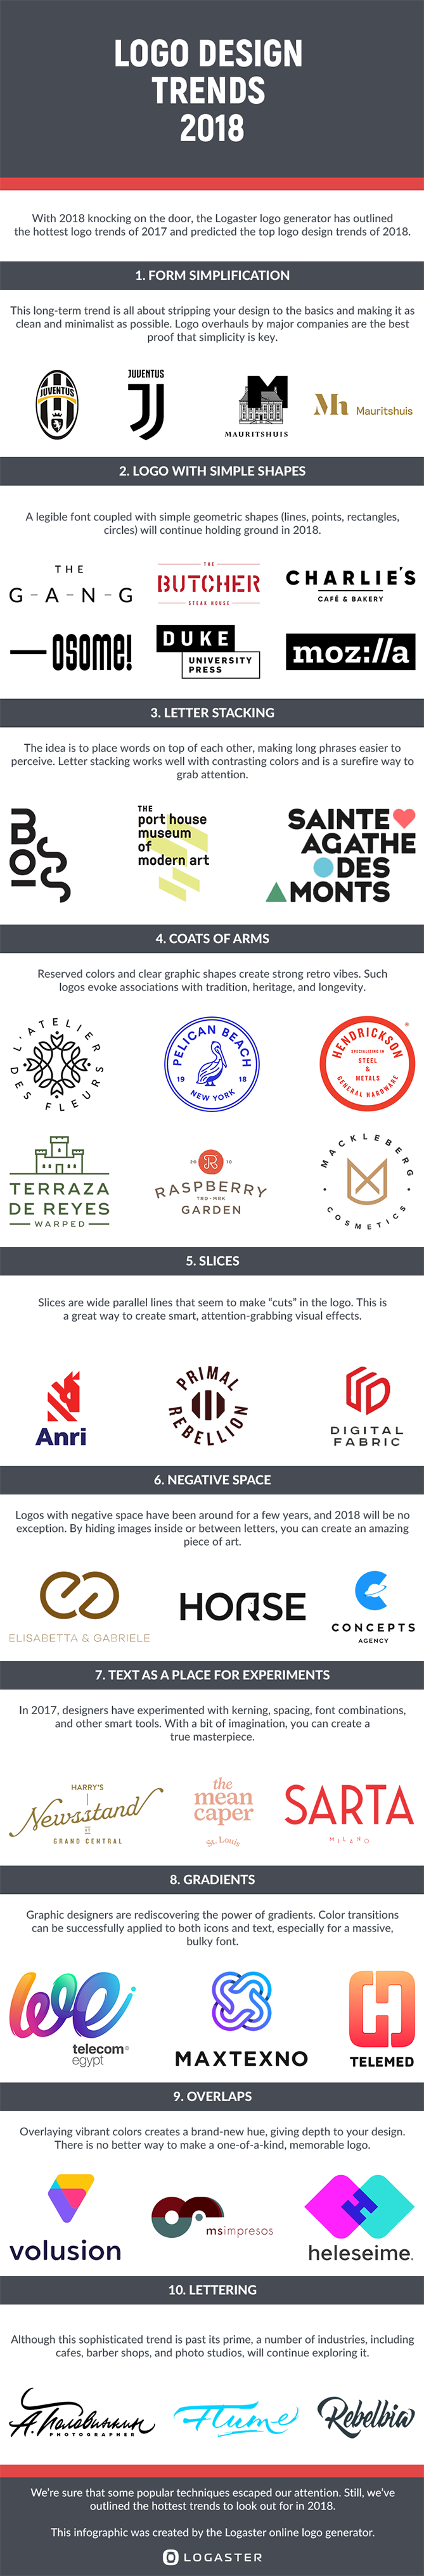 logo-trends-2018-UPDATED.png  10 Logo Design Trends to Watch for in 2018 [Infographic] logo trends 2018 UPDATED